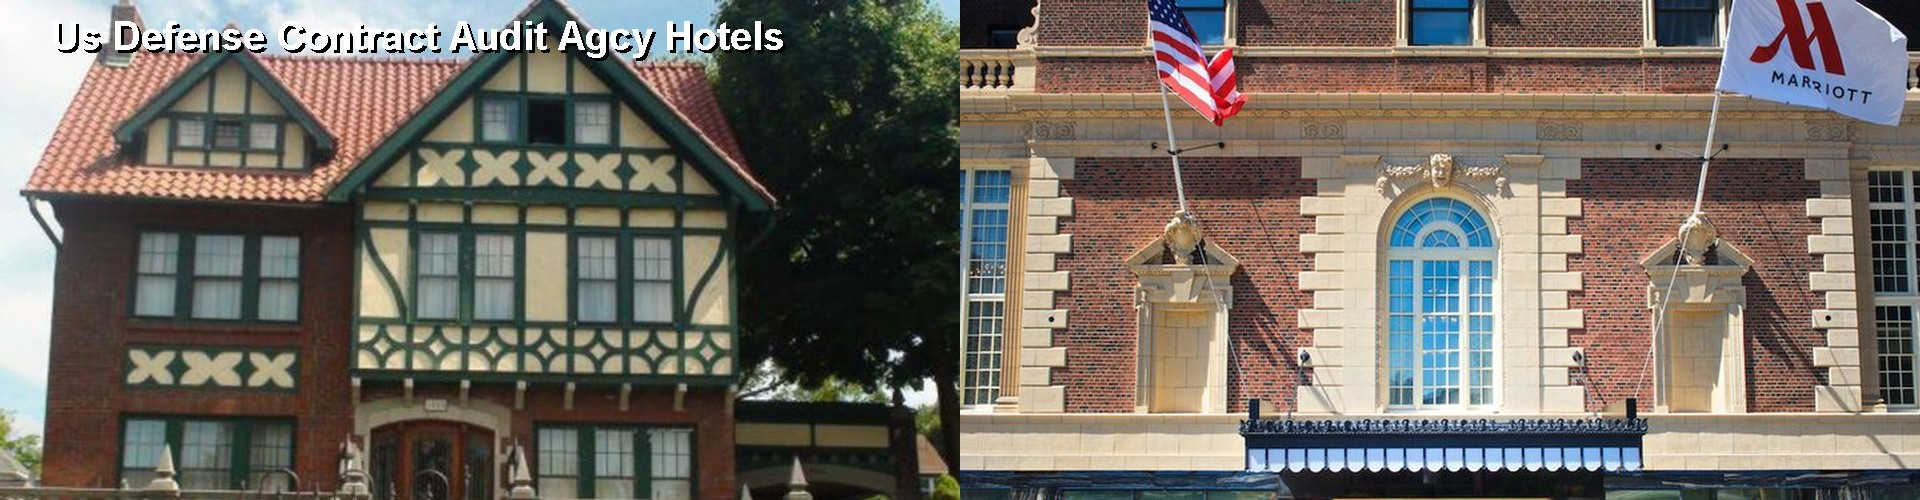 5 Best Hotels near Us Defense Contract Audit Agcy